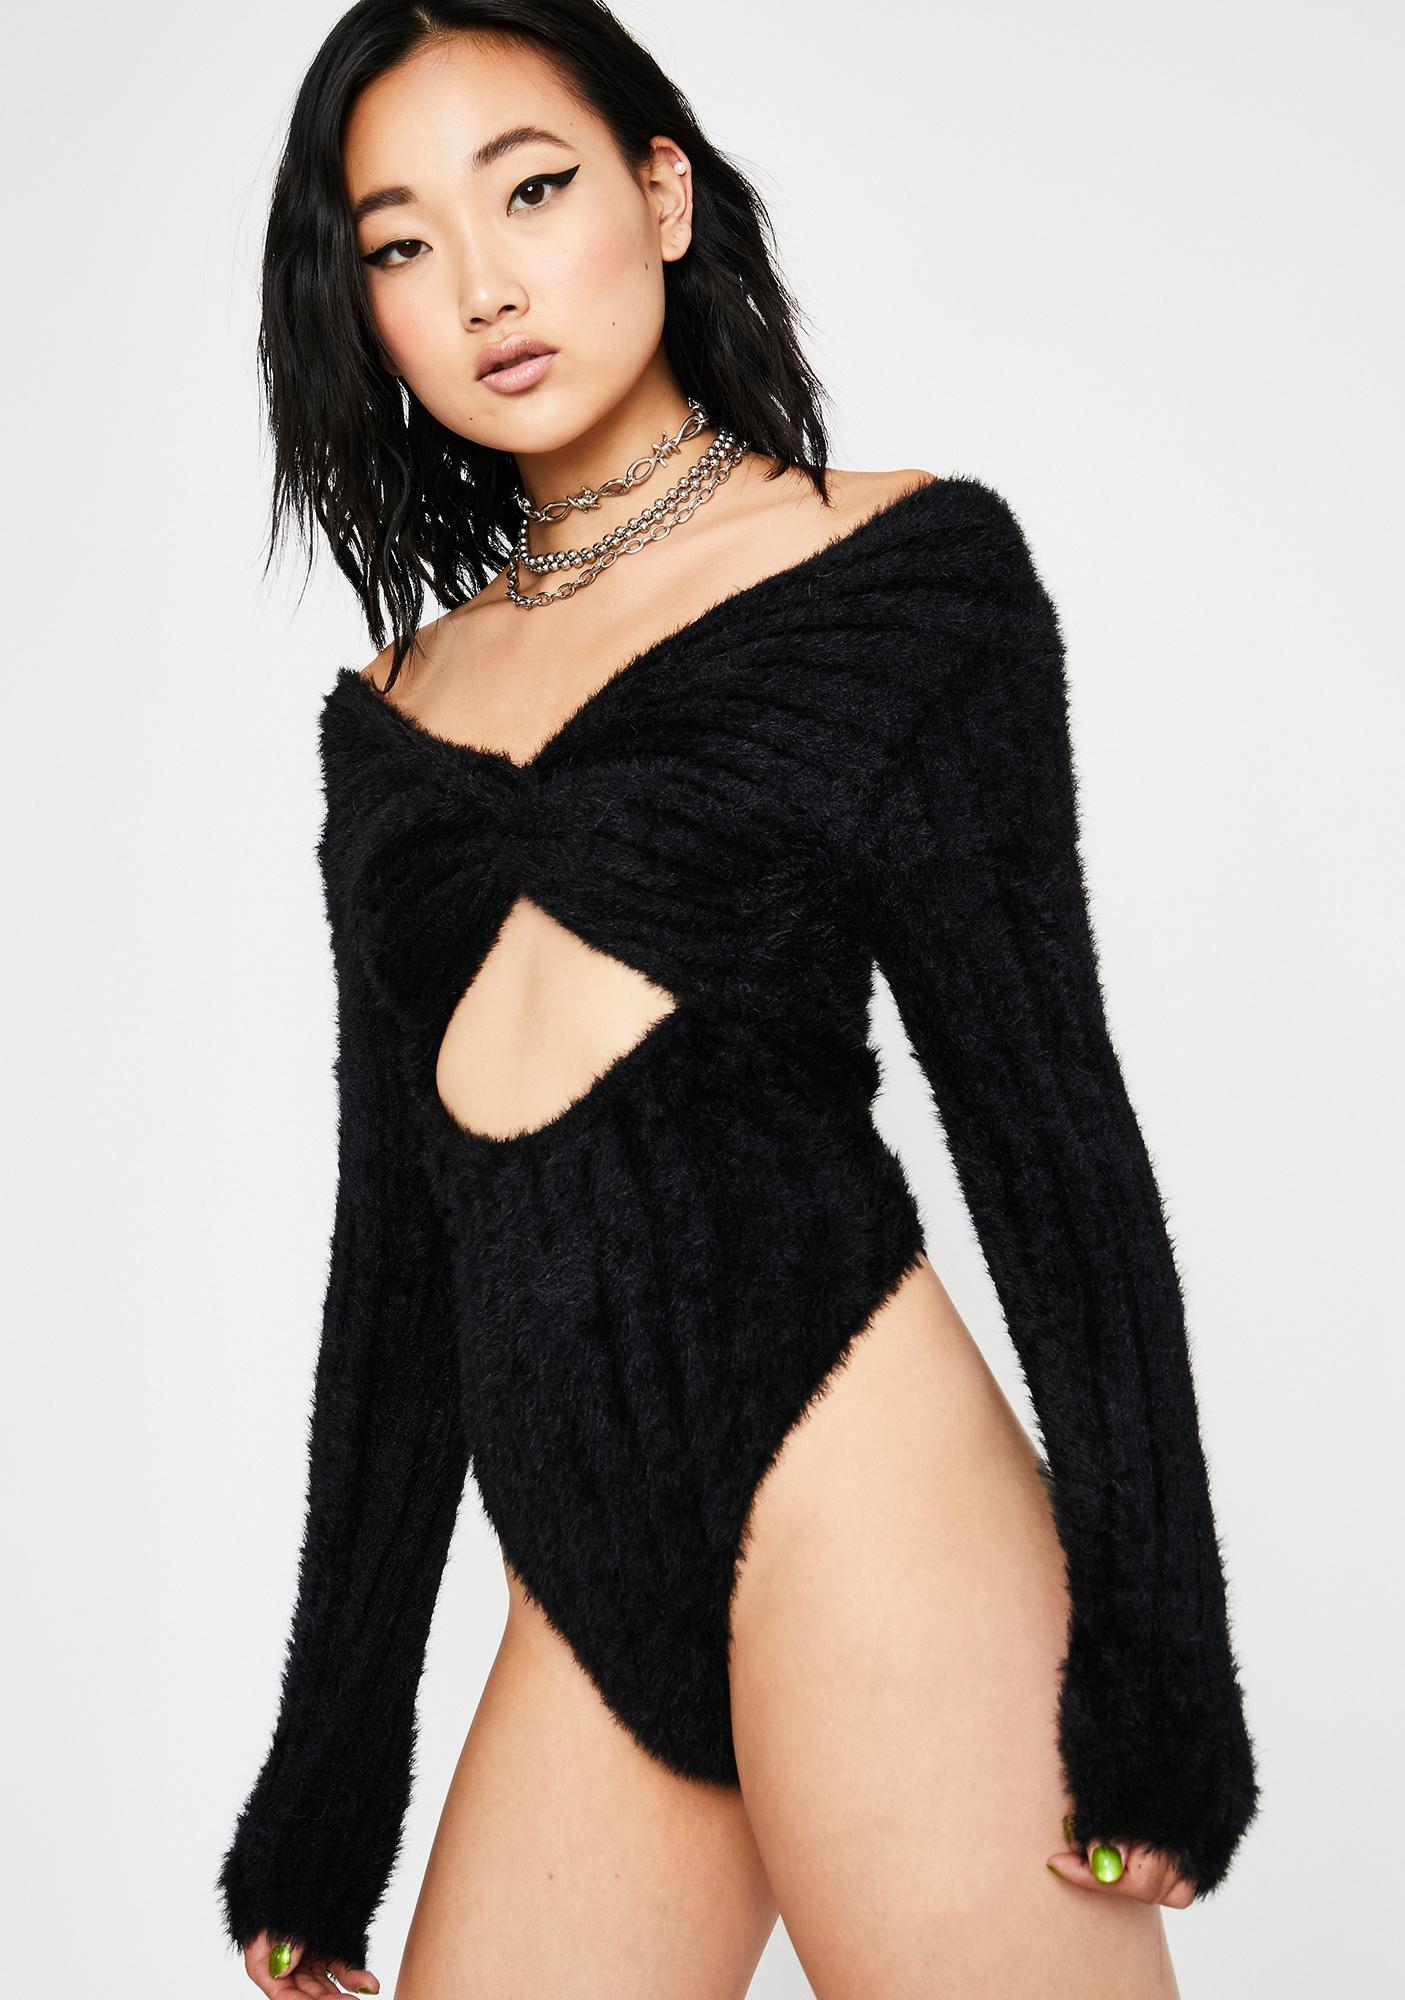 Coldhearted Lover Cut Out Bodysuit